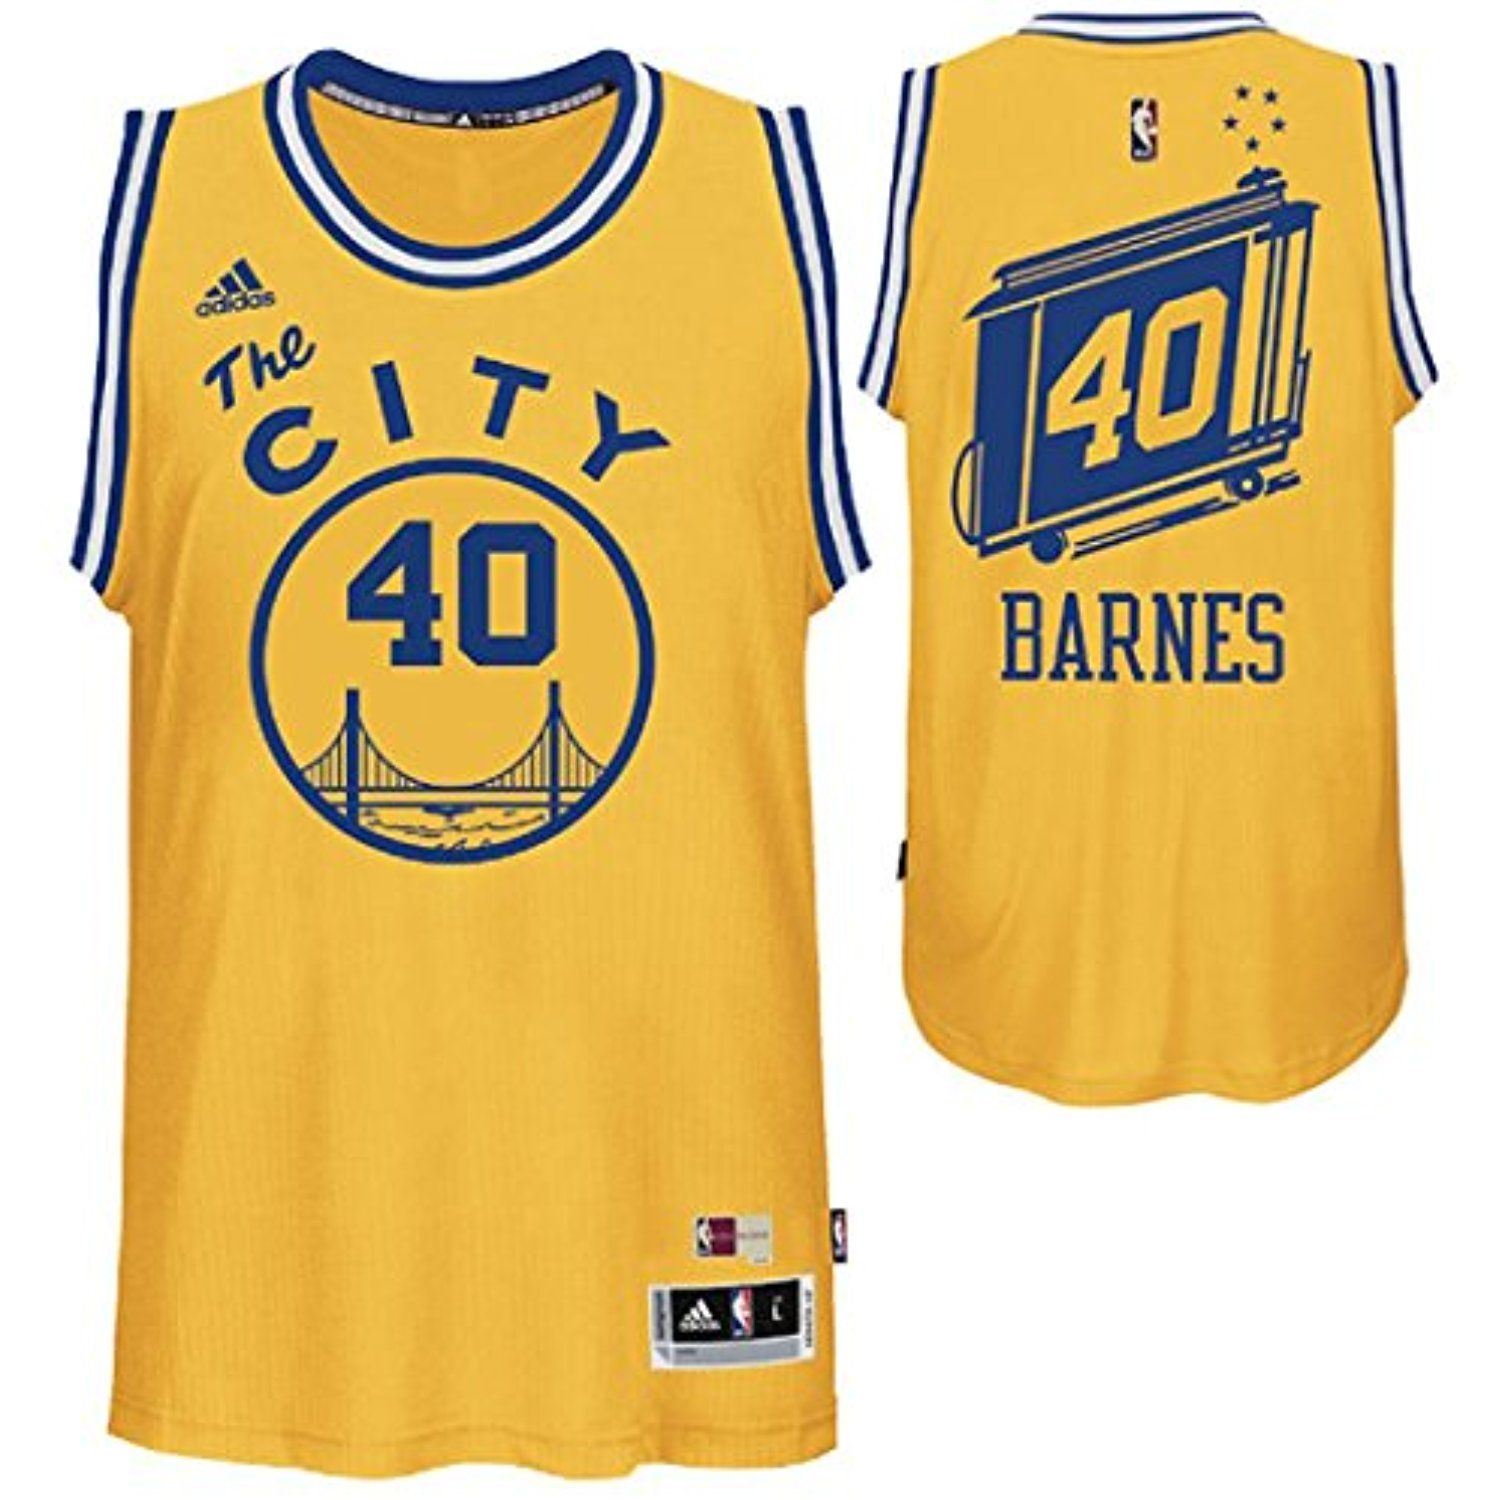 16b5fcb1 Harrison Barnes Golden State Warriors Yellow The City NBA Youth Hardwood  Classic Swingman Jersey >>> Click image to review more details.